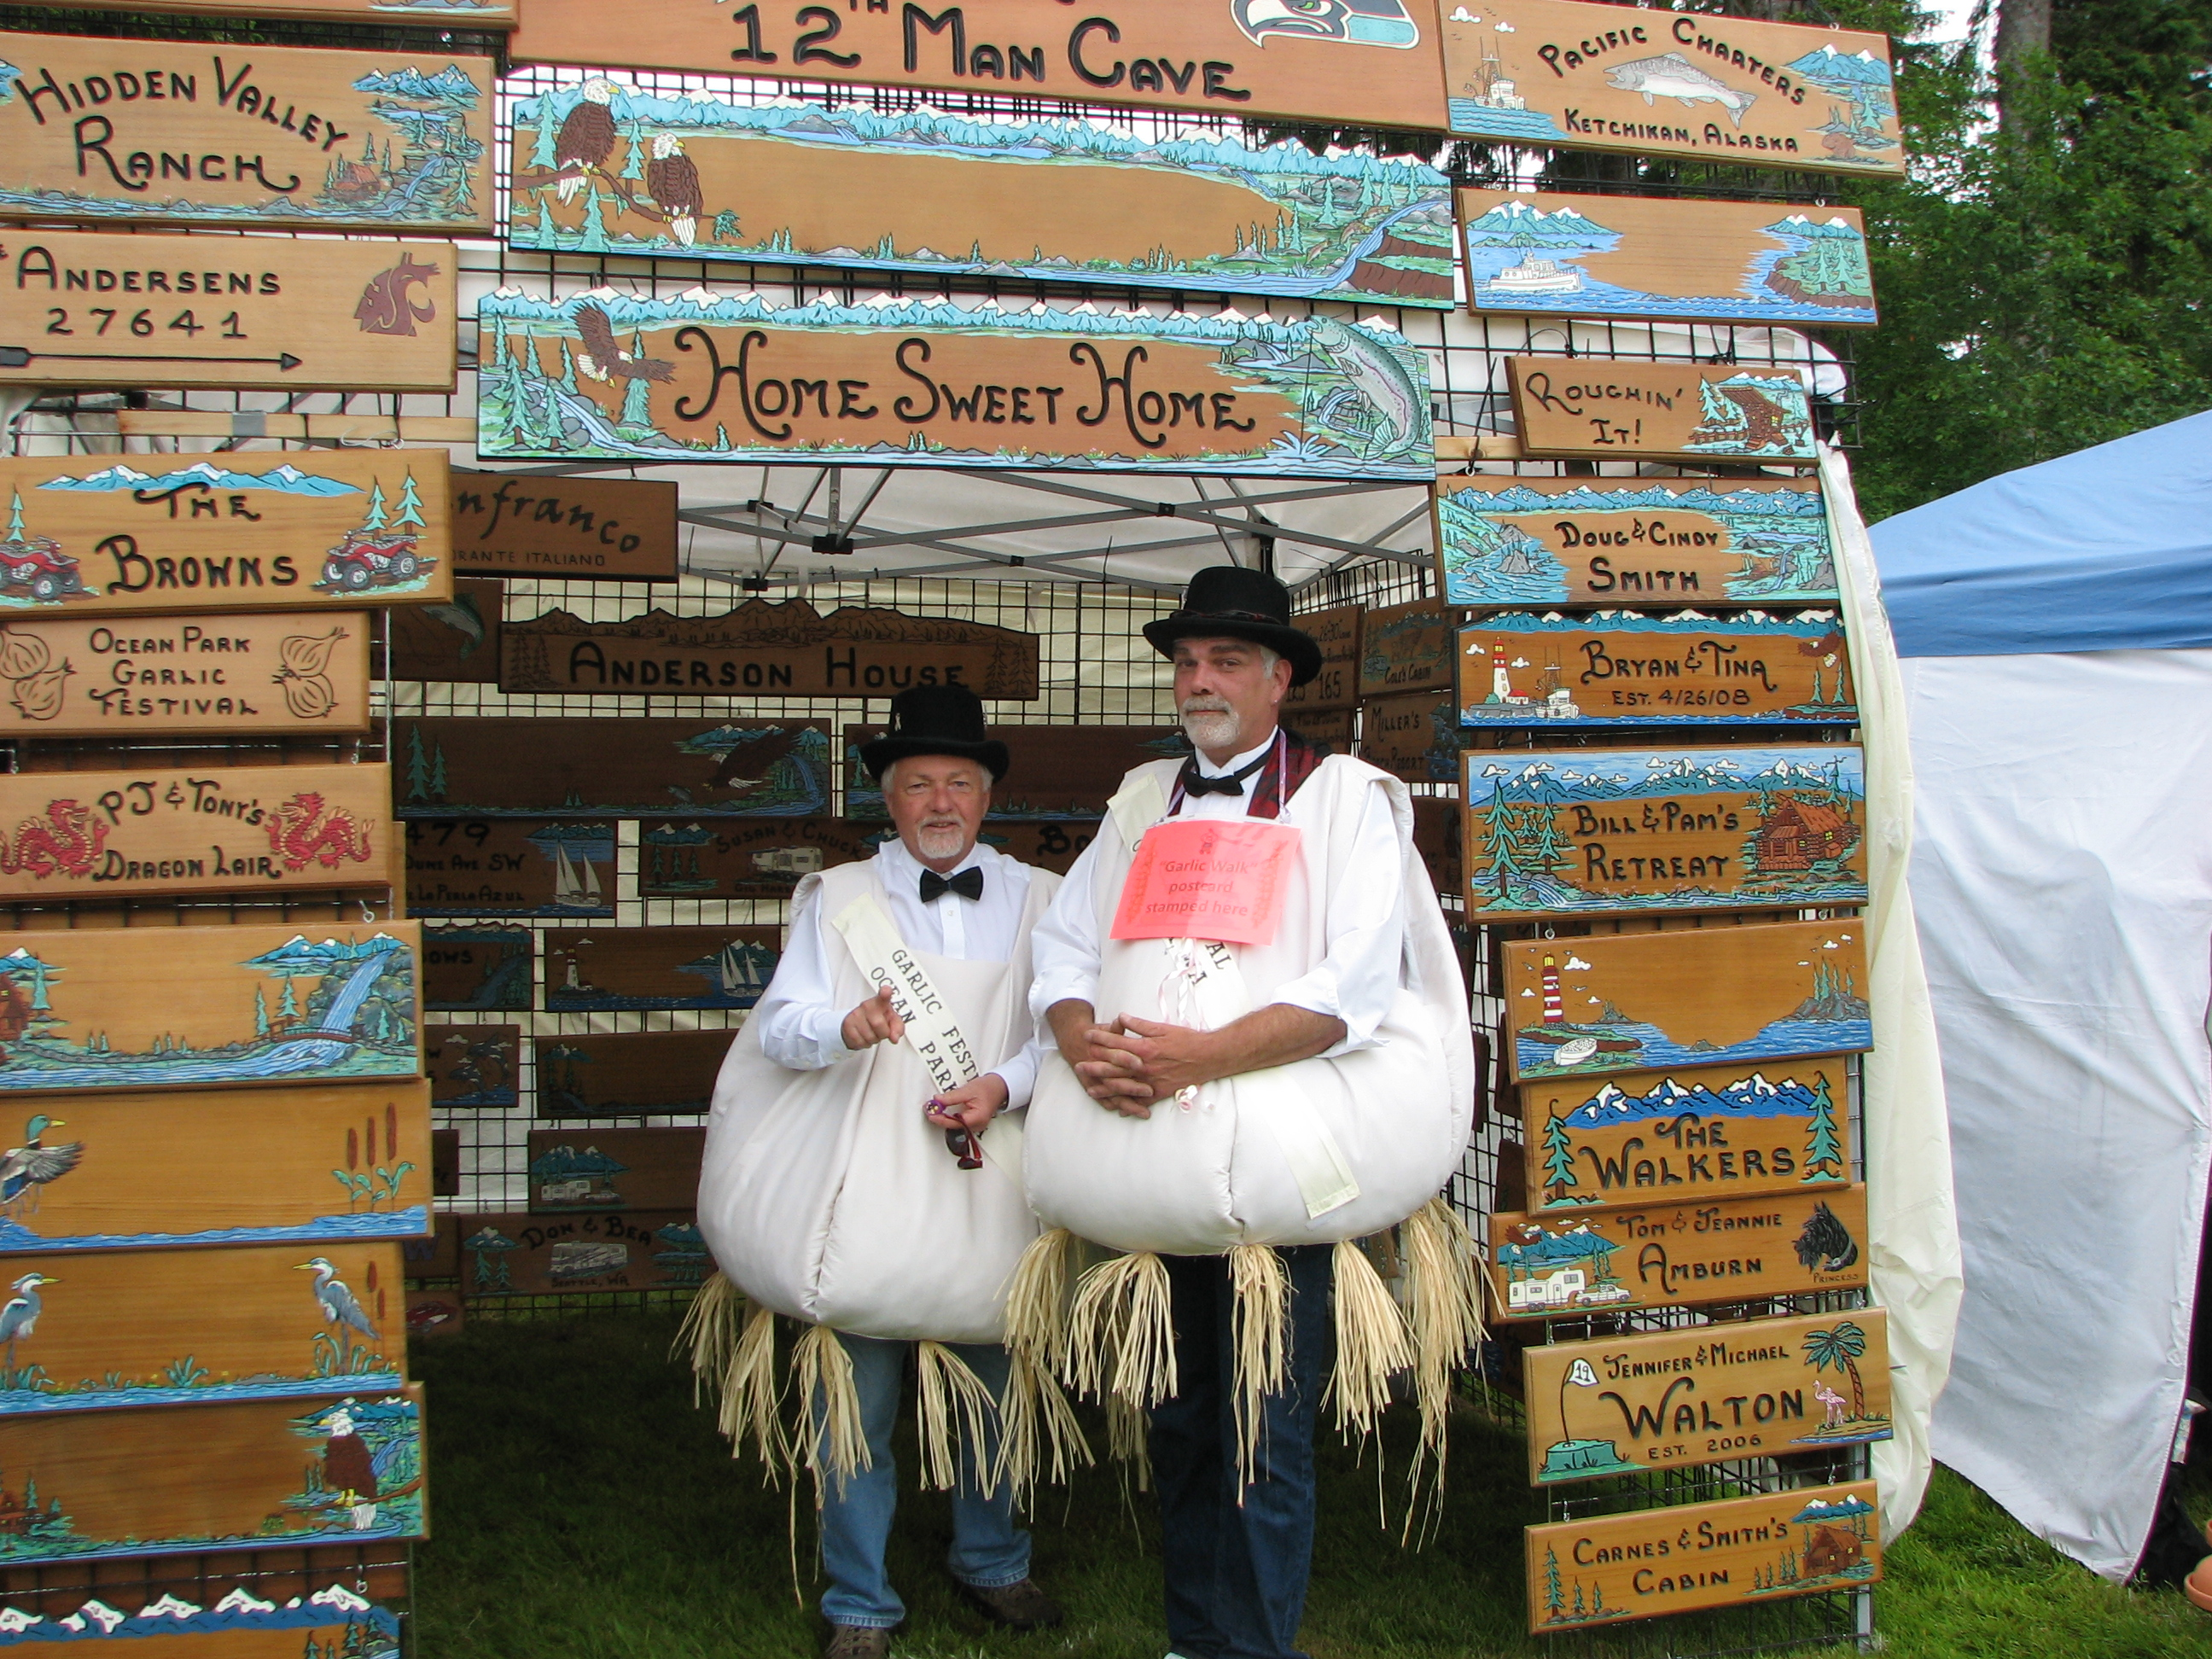 Northwest Garlic Festival - men in garlic suits